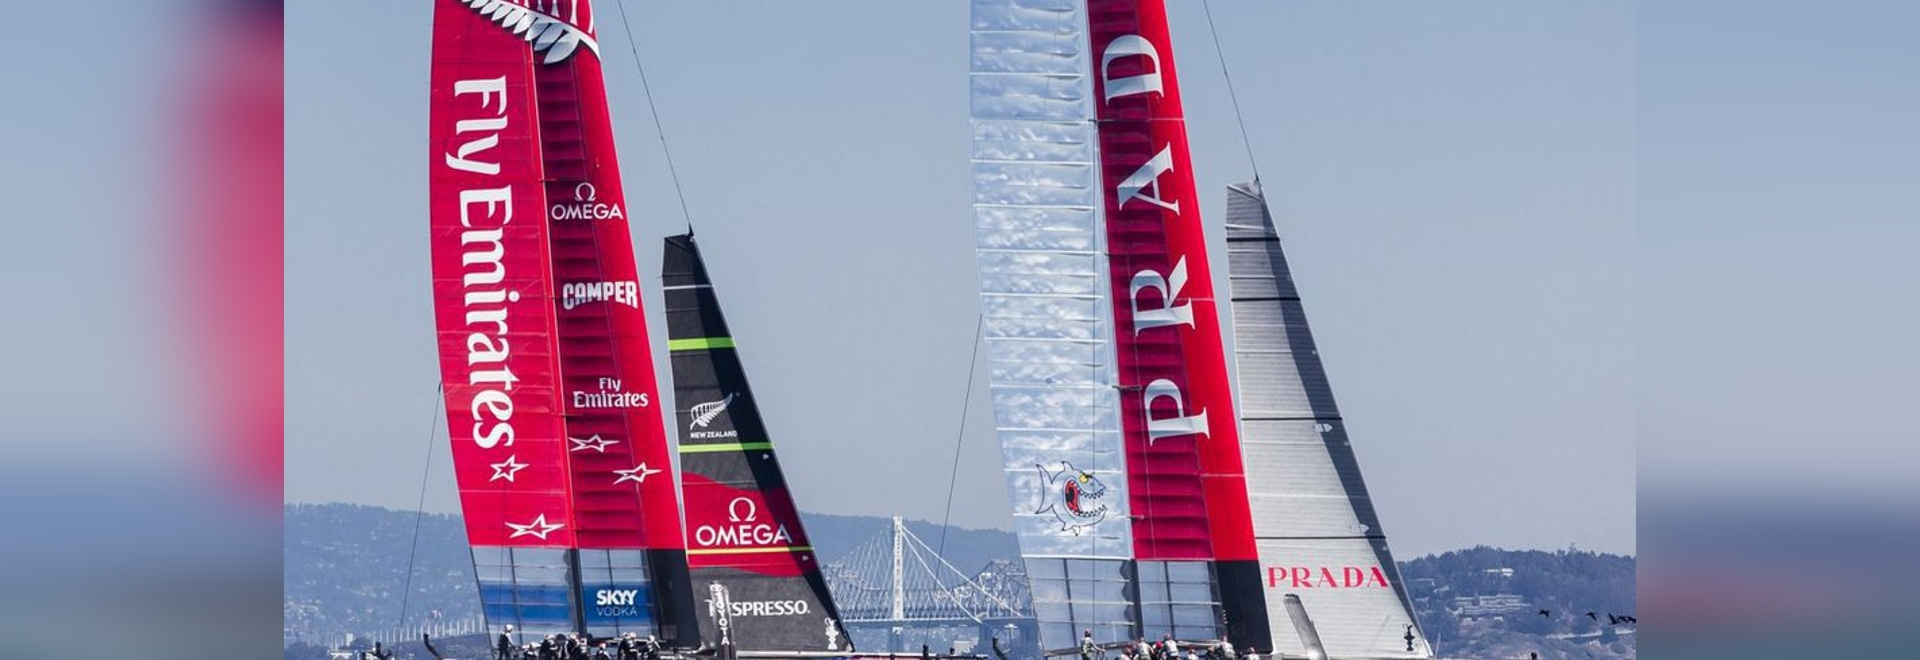 Luna Rossa and Emirates Team New Zealand battle for the role of Challenger in the 2013 America's Cup in San Francisco.